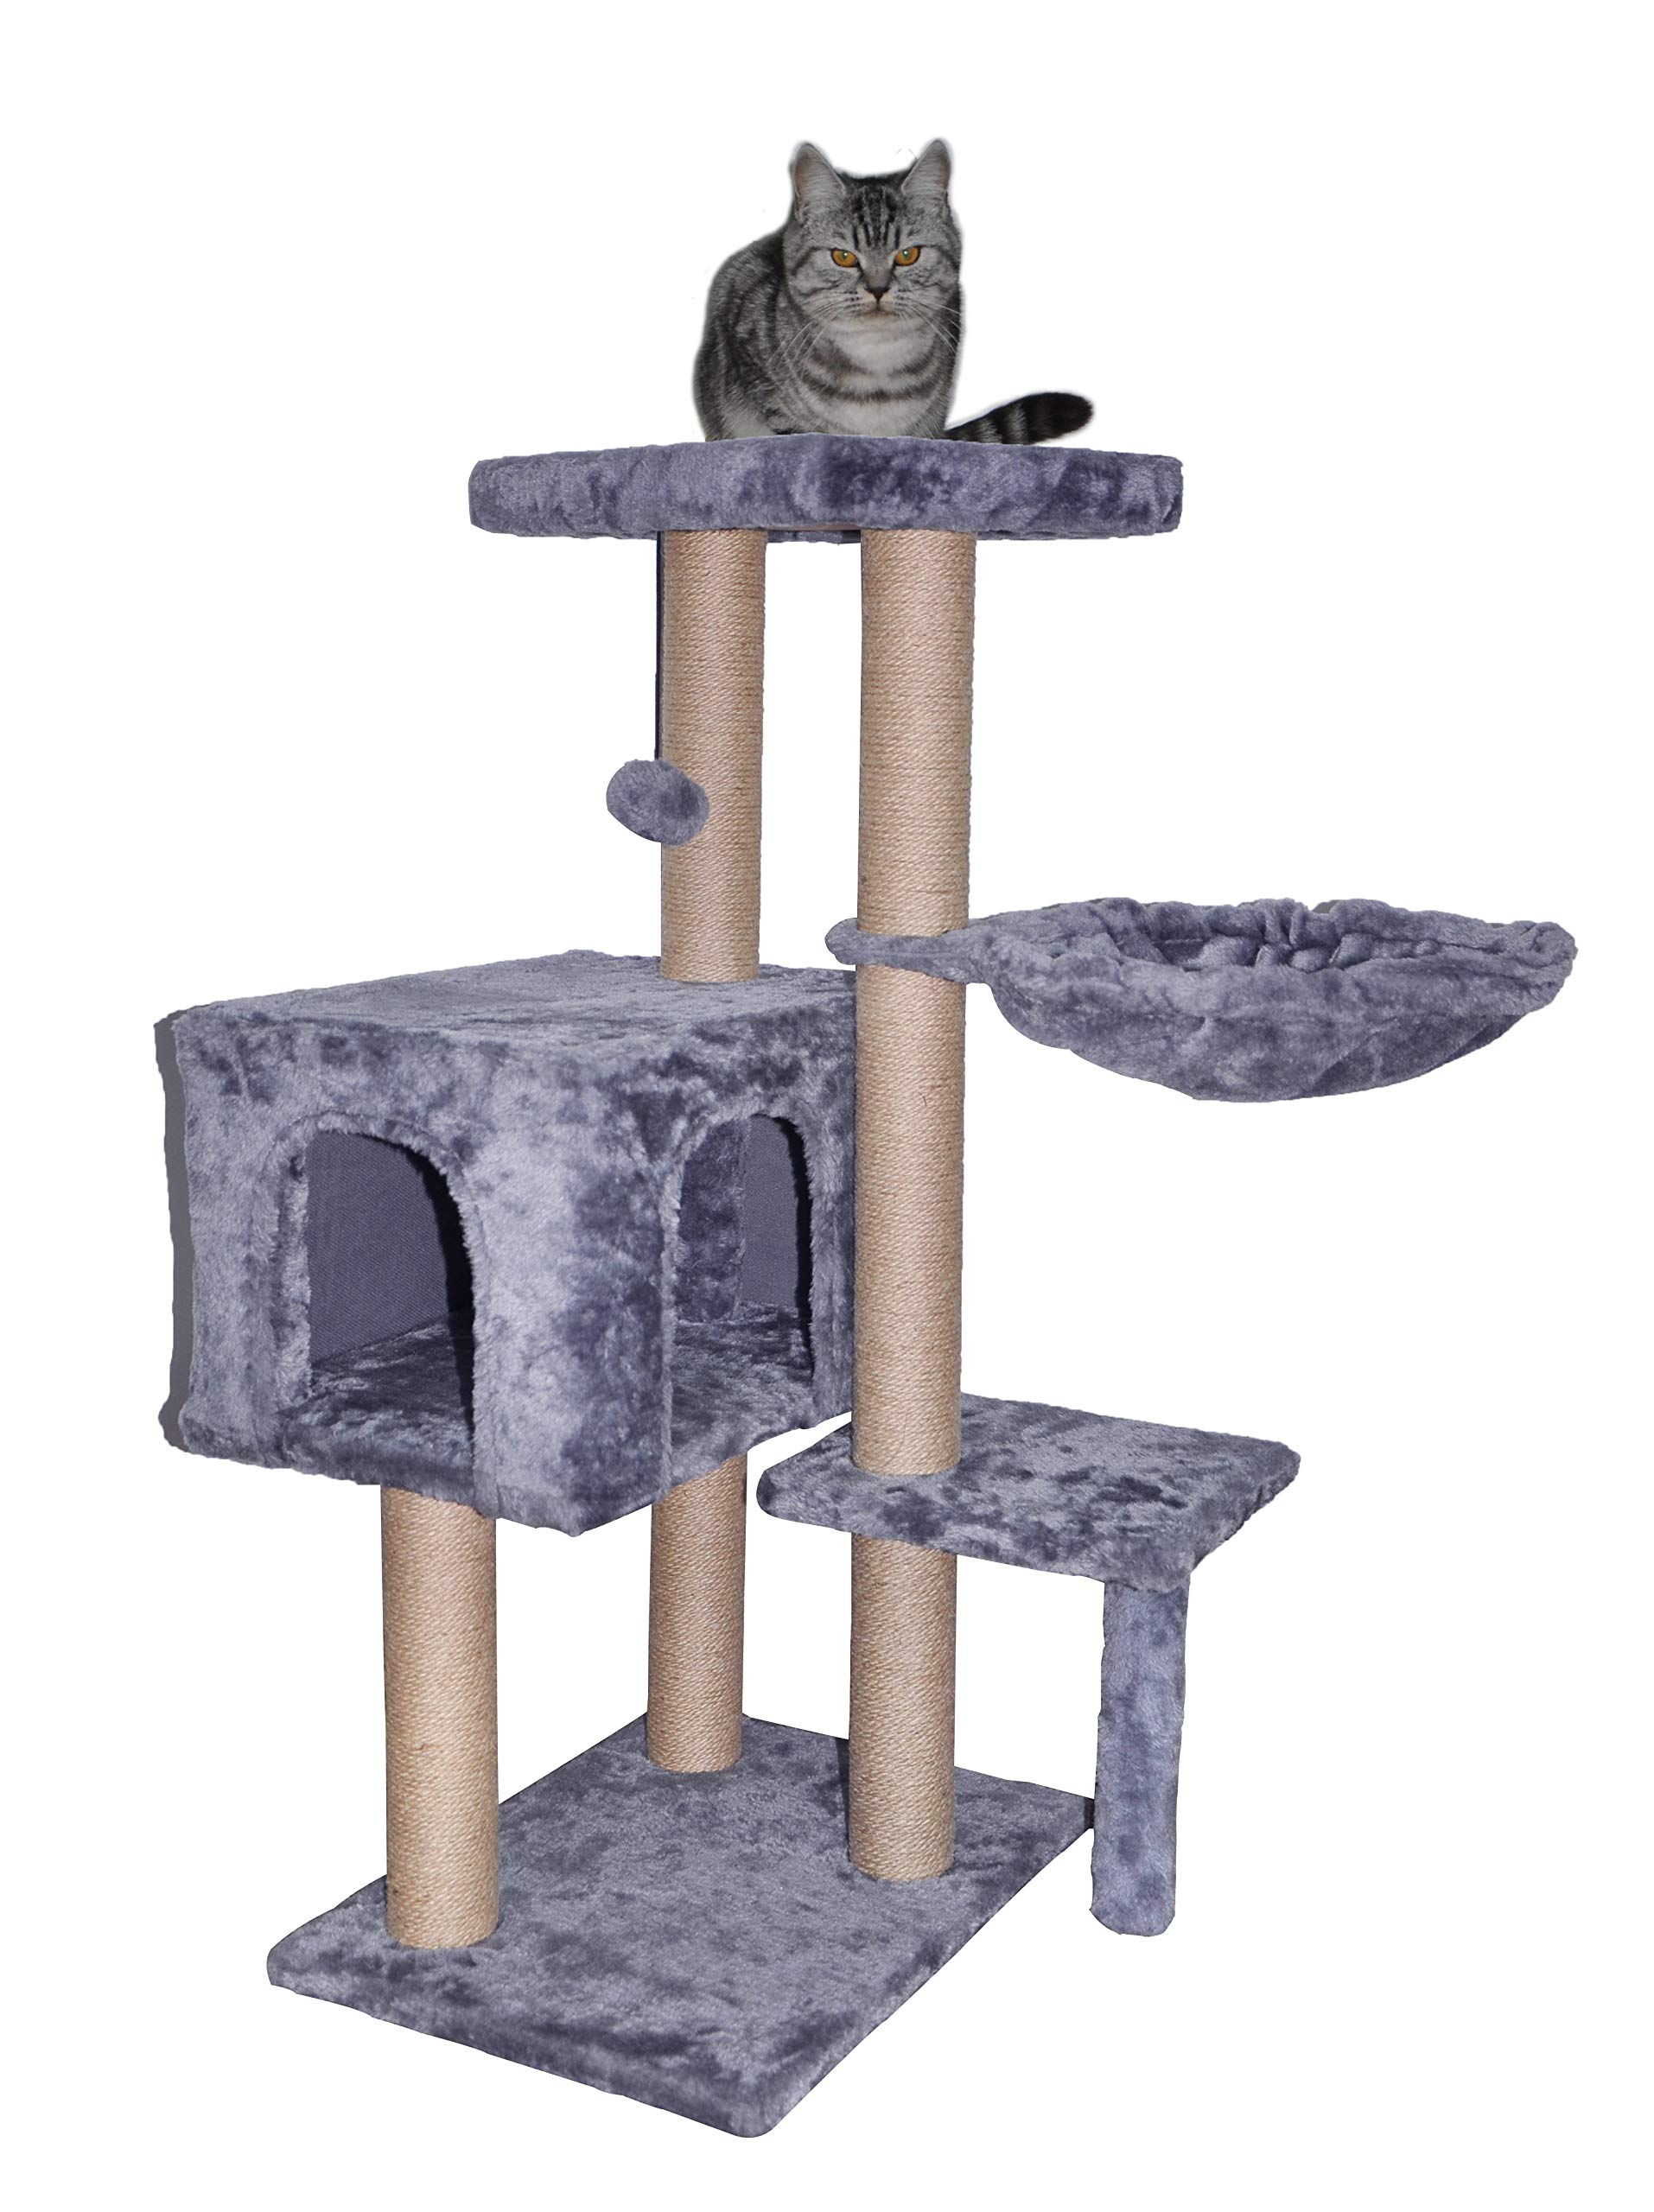 WIKI 002G Cat Tree has Scratching Toy with a Ball Activity Centre Cat Tower Furniture Jute-Covered Scratching Posts Grey by WIKI